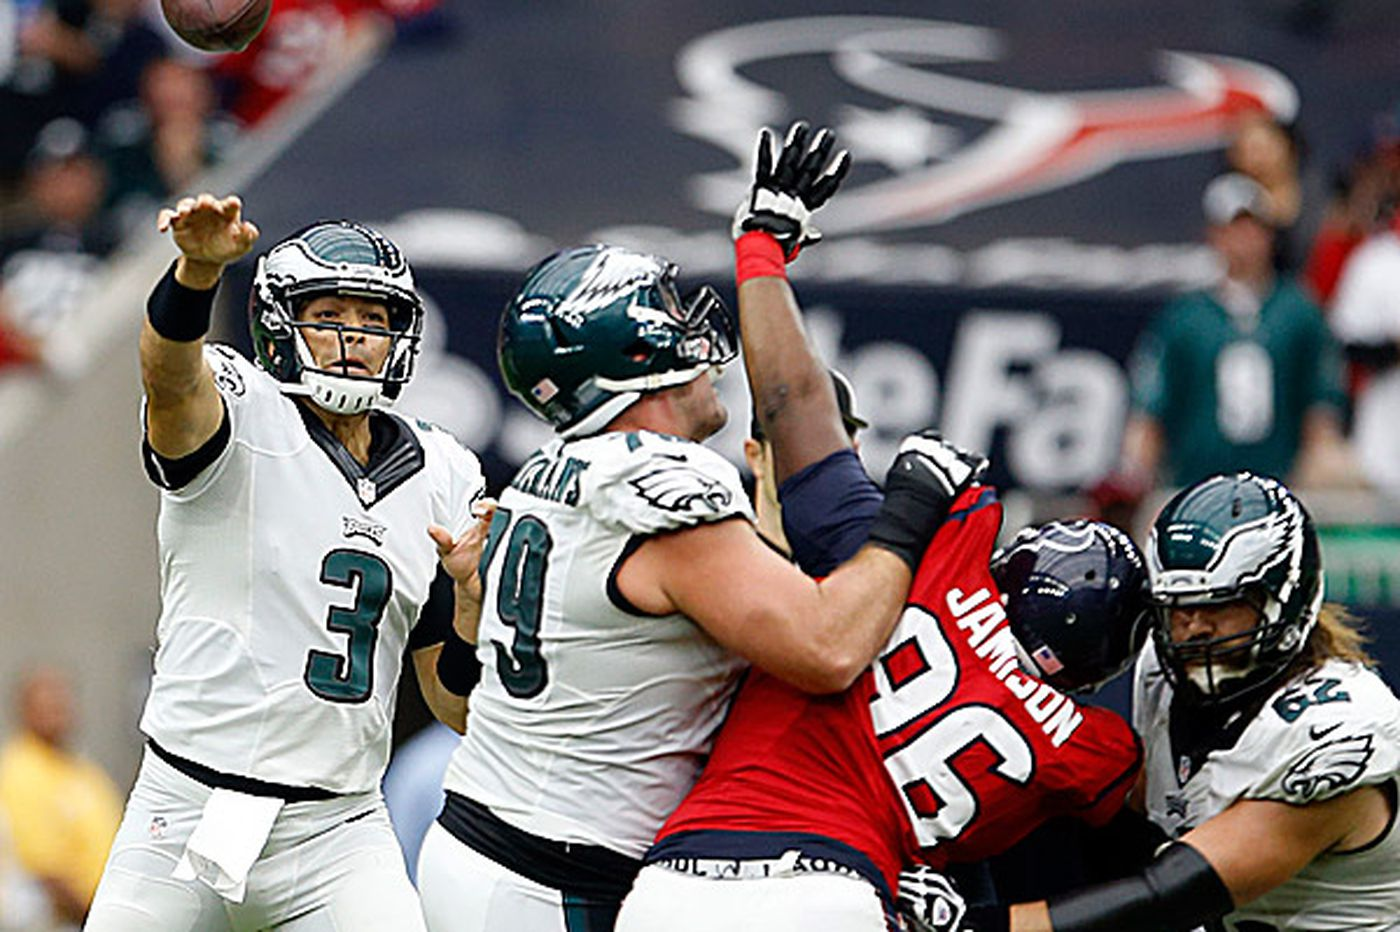 With Foles out 6-8 weeks, Eagles offense belongs to Sanchez